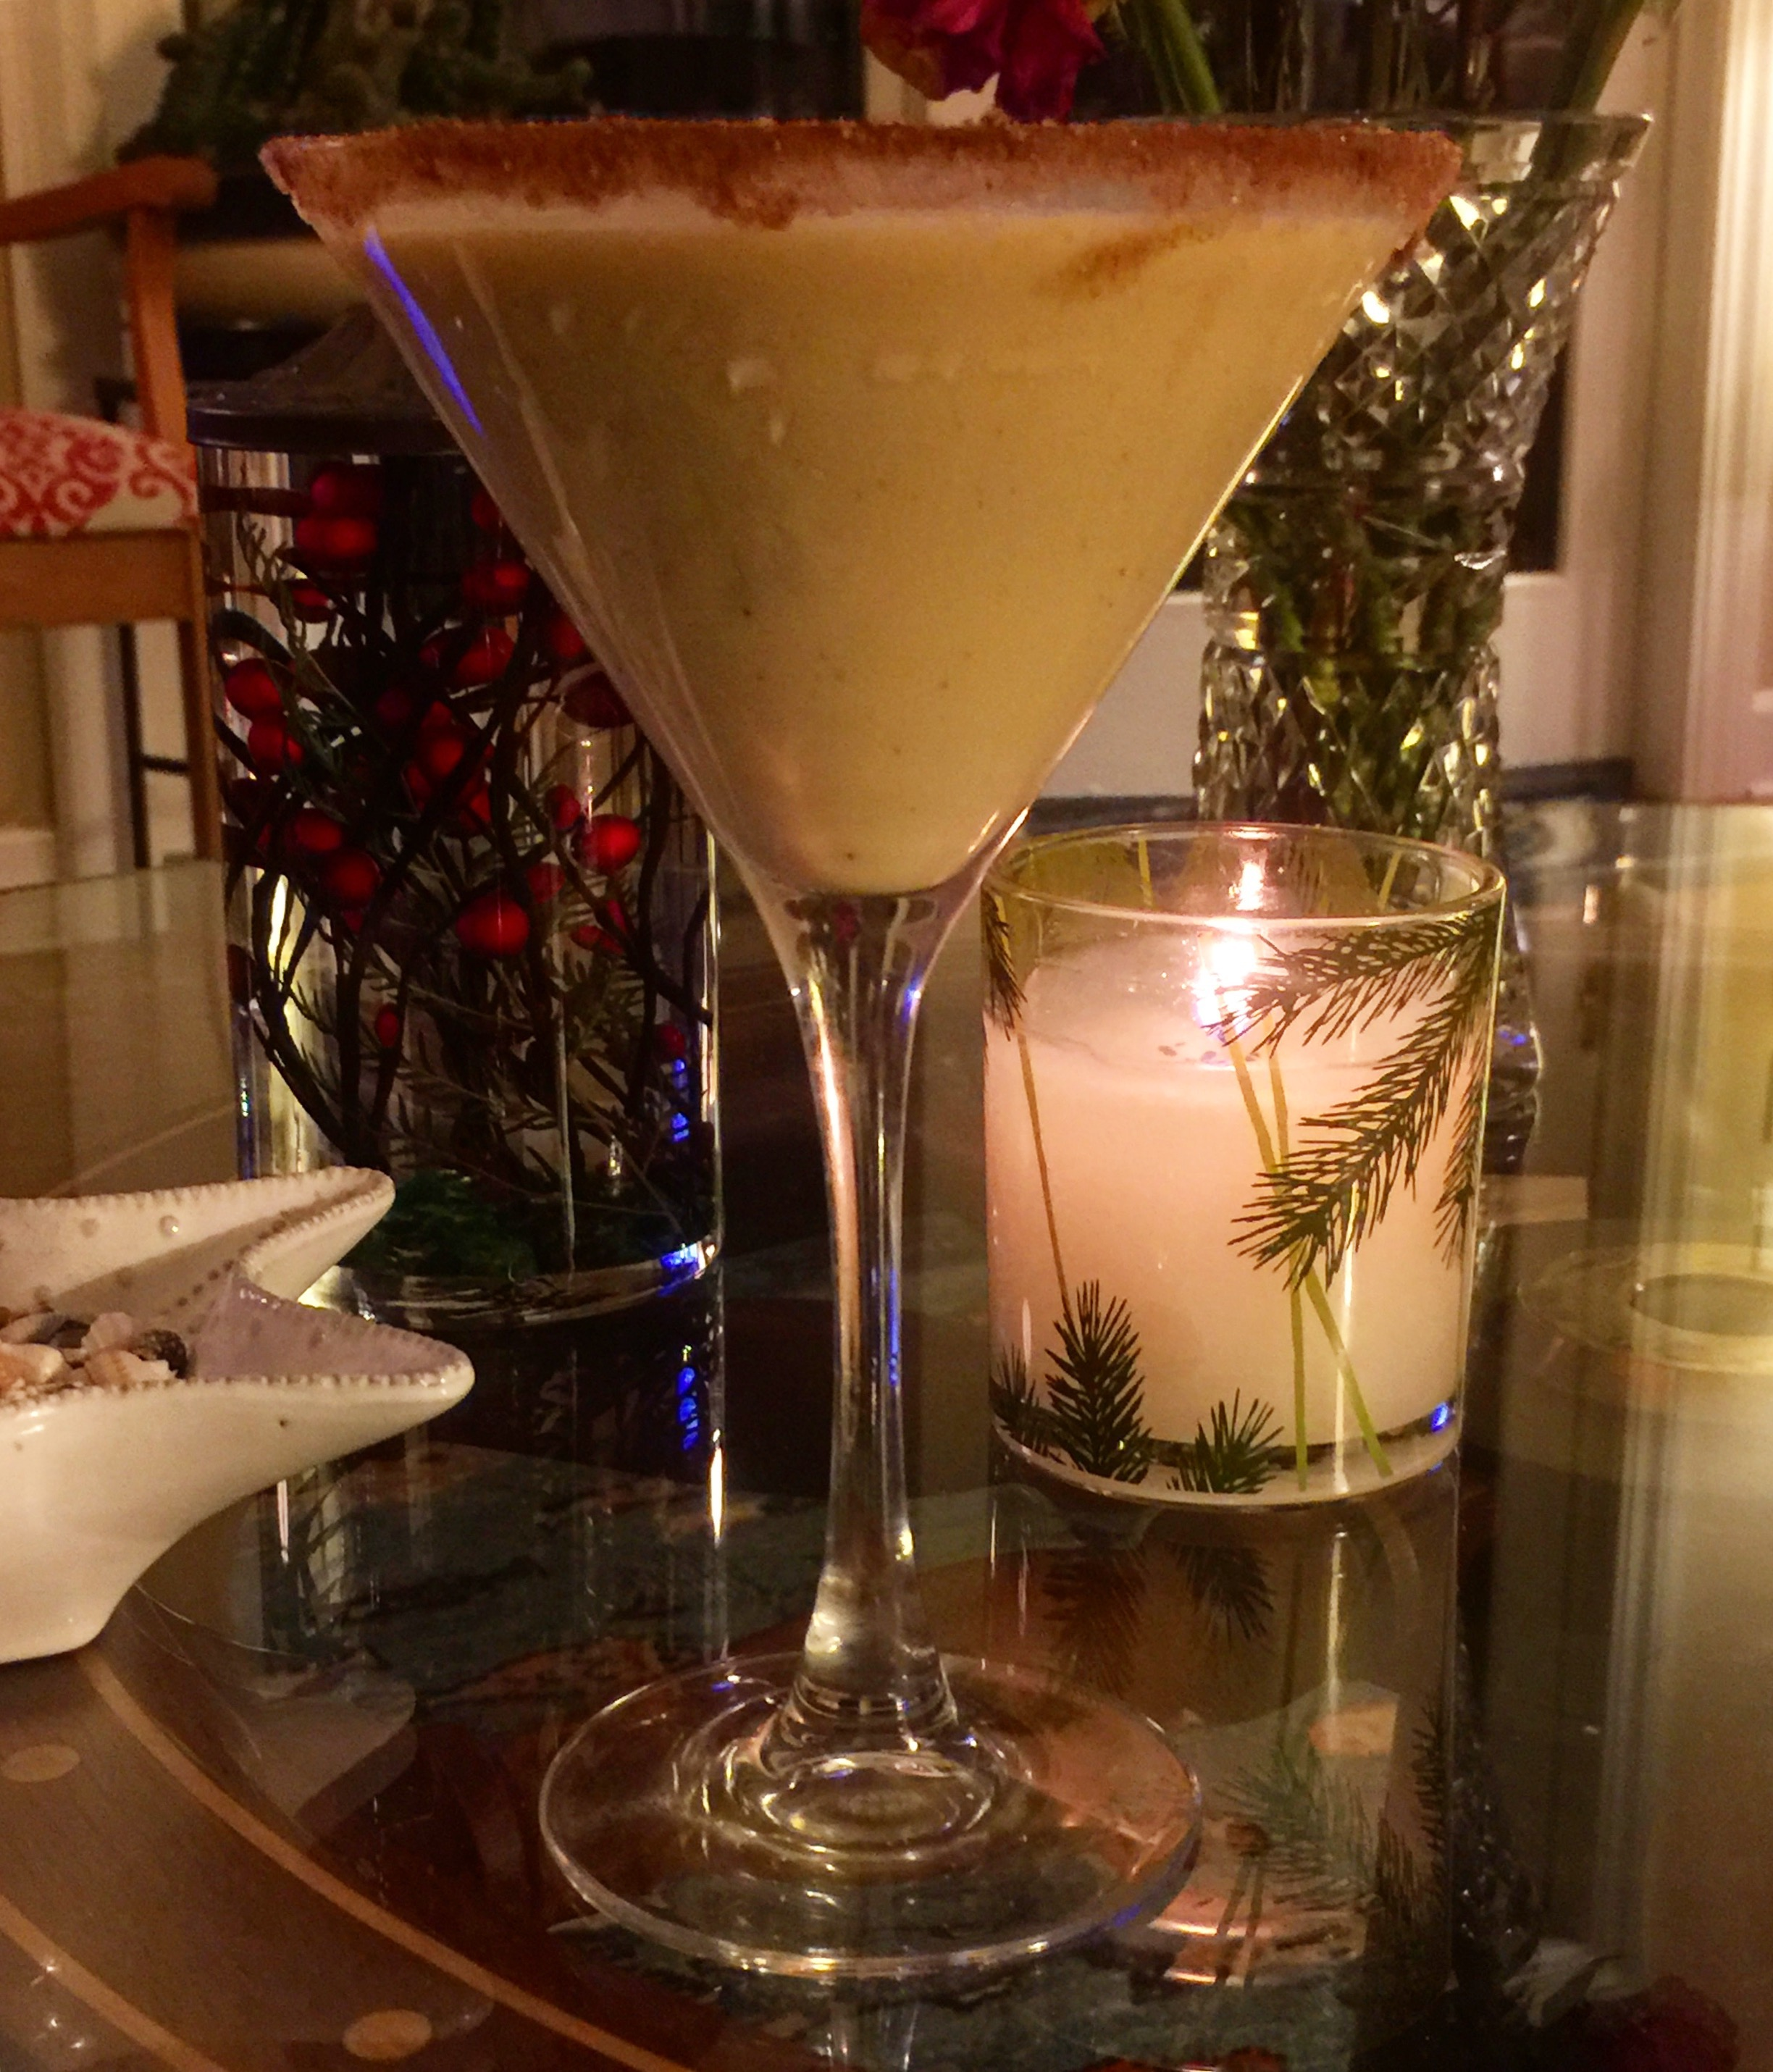 Eggnog Martini     3 jiggers eggnog    2 jiggers Oysterville Vodka    1 jigger Baileys Cream     Pour into an ice filled cocktail shaker...SHAKE...pour into a chilled martini glass rimmed with cinnamon sugar and top it off with fresh granted nutmeg.  Cheers!